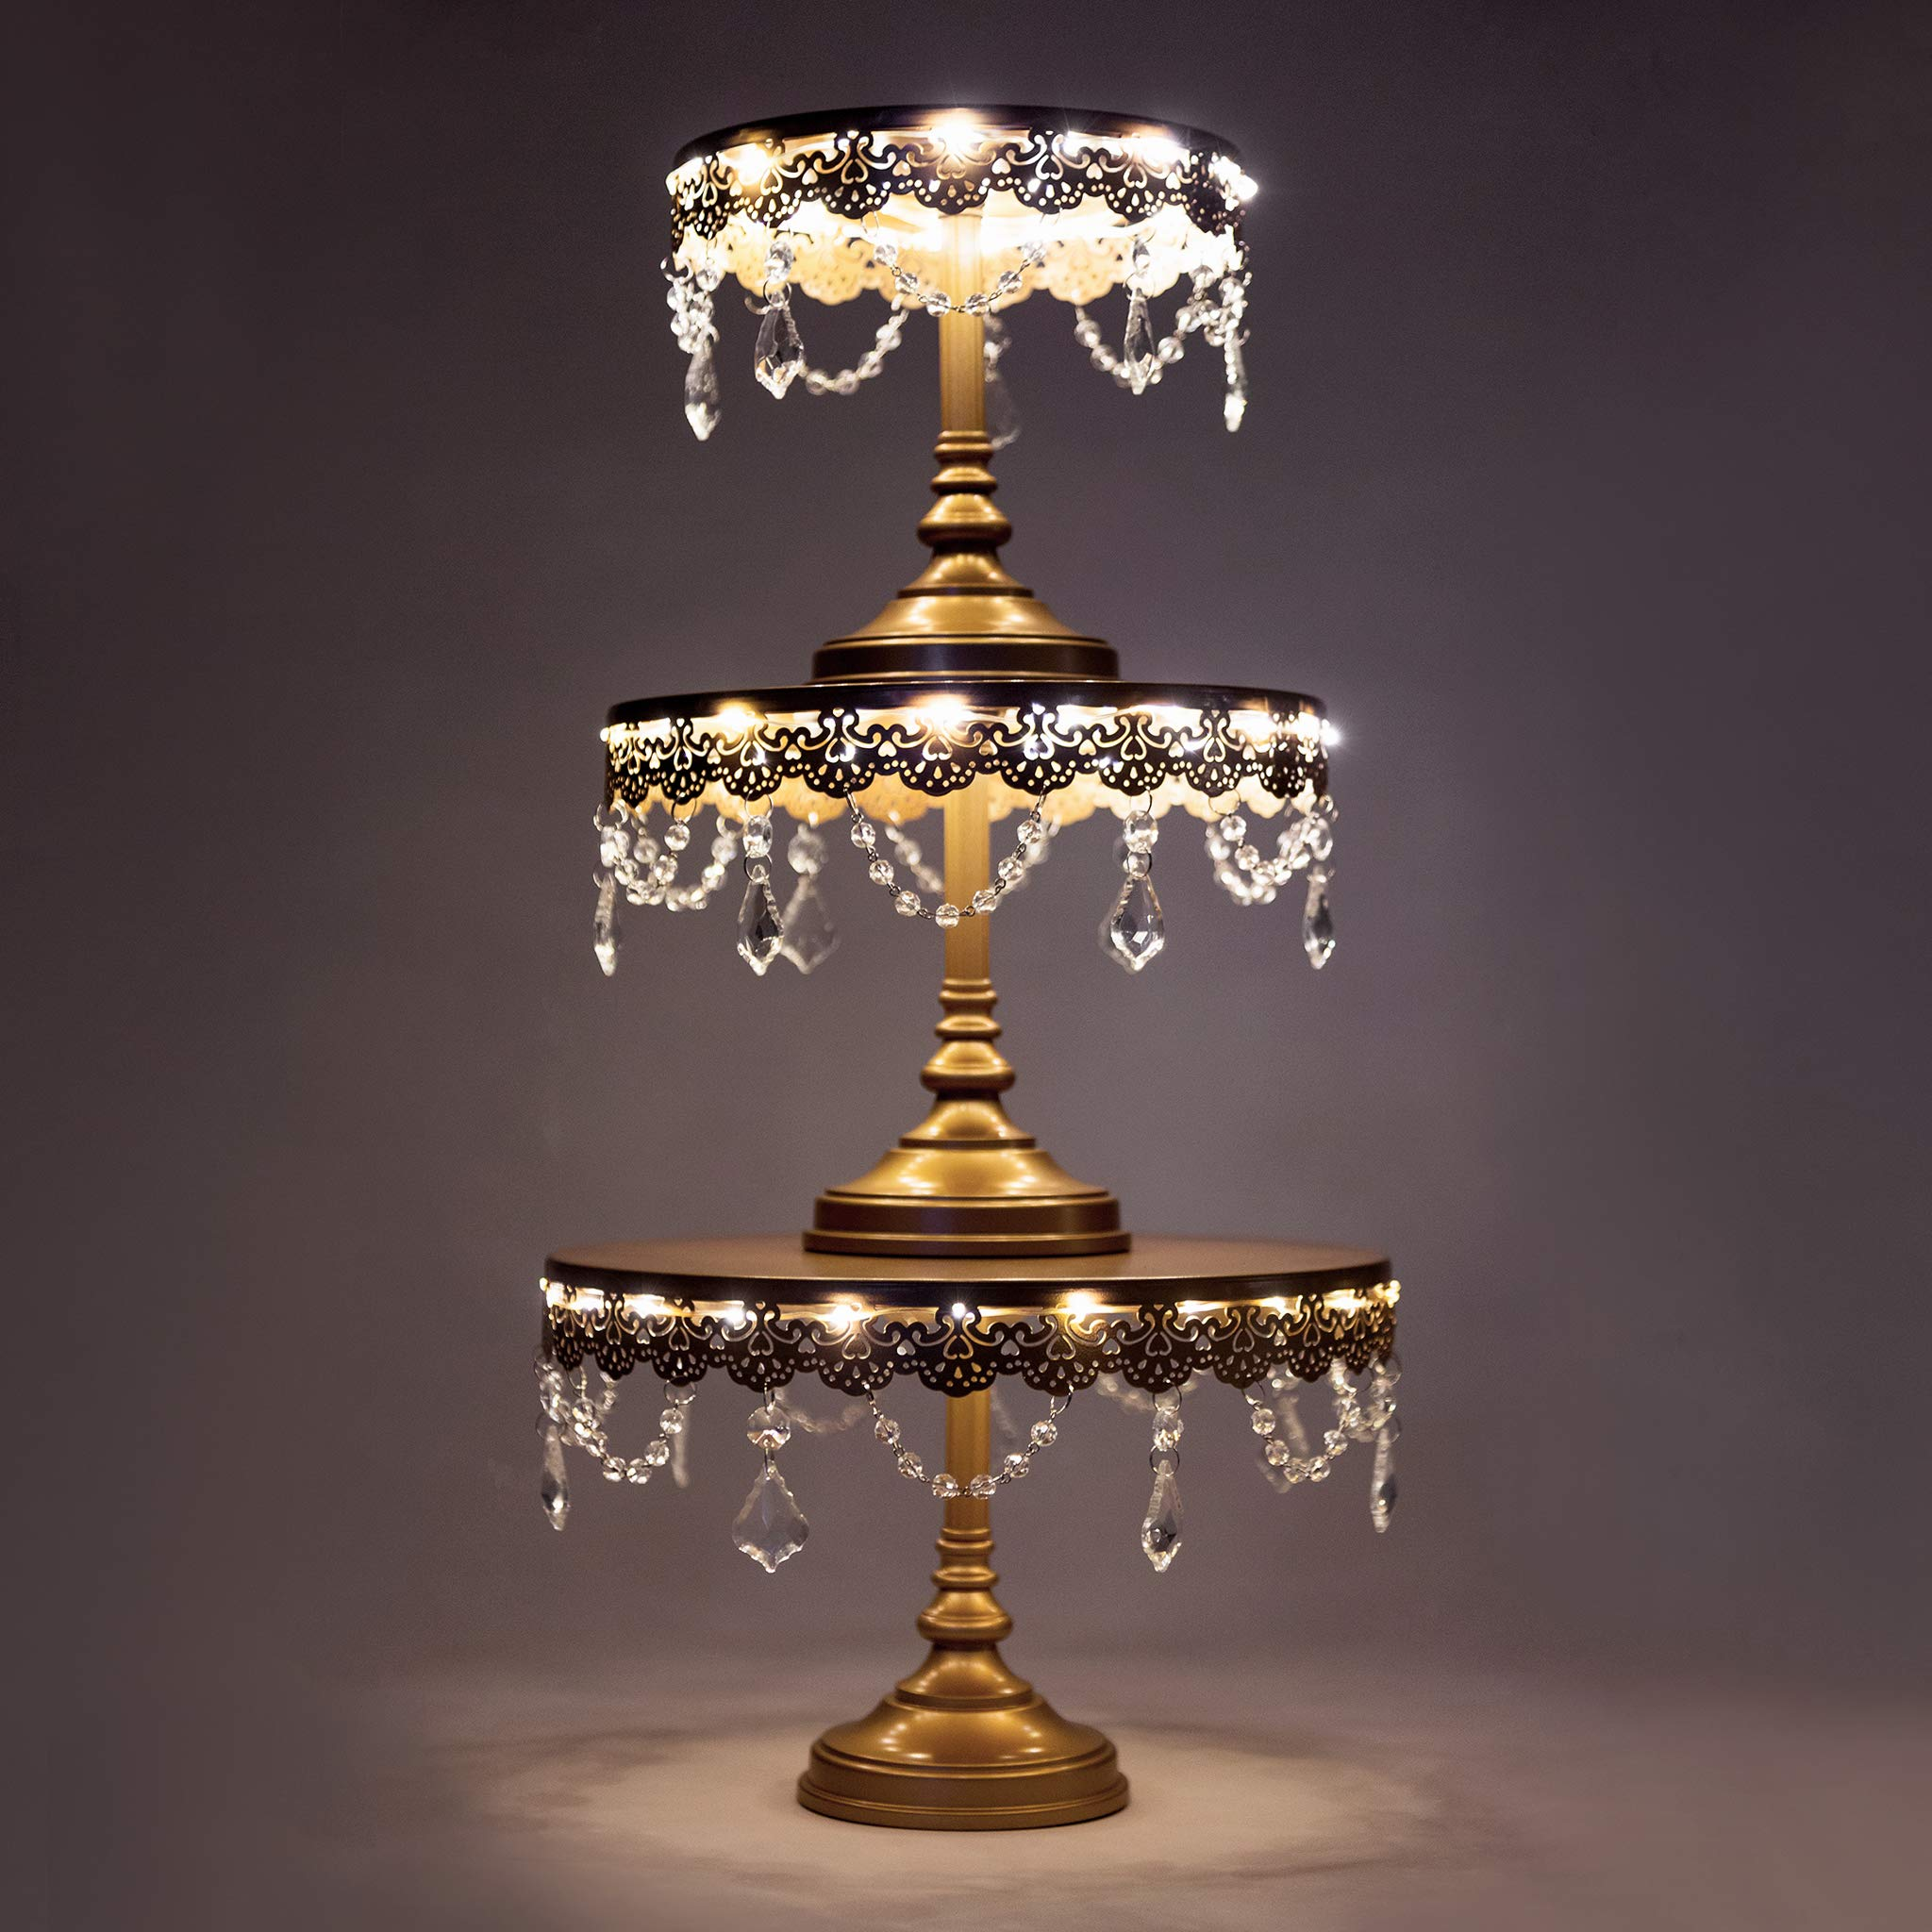 Amalfi Decor Cake Stand Set of 3 Pack with LED Lights, Dessert Cupcake Pastry Candy Plate for Wedding Event Birthday Party, Round Chargeable Metal Pedestal Holder, Gold by Amalfi Décor